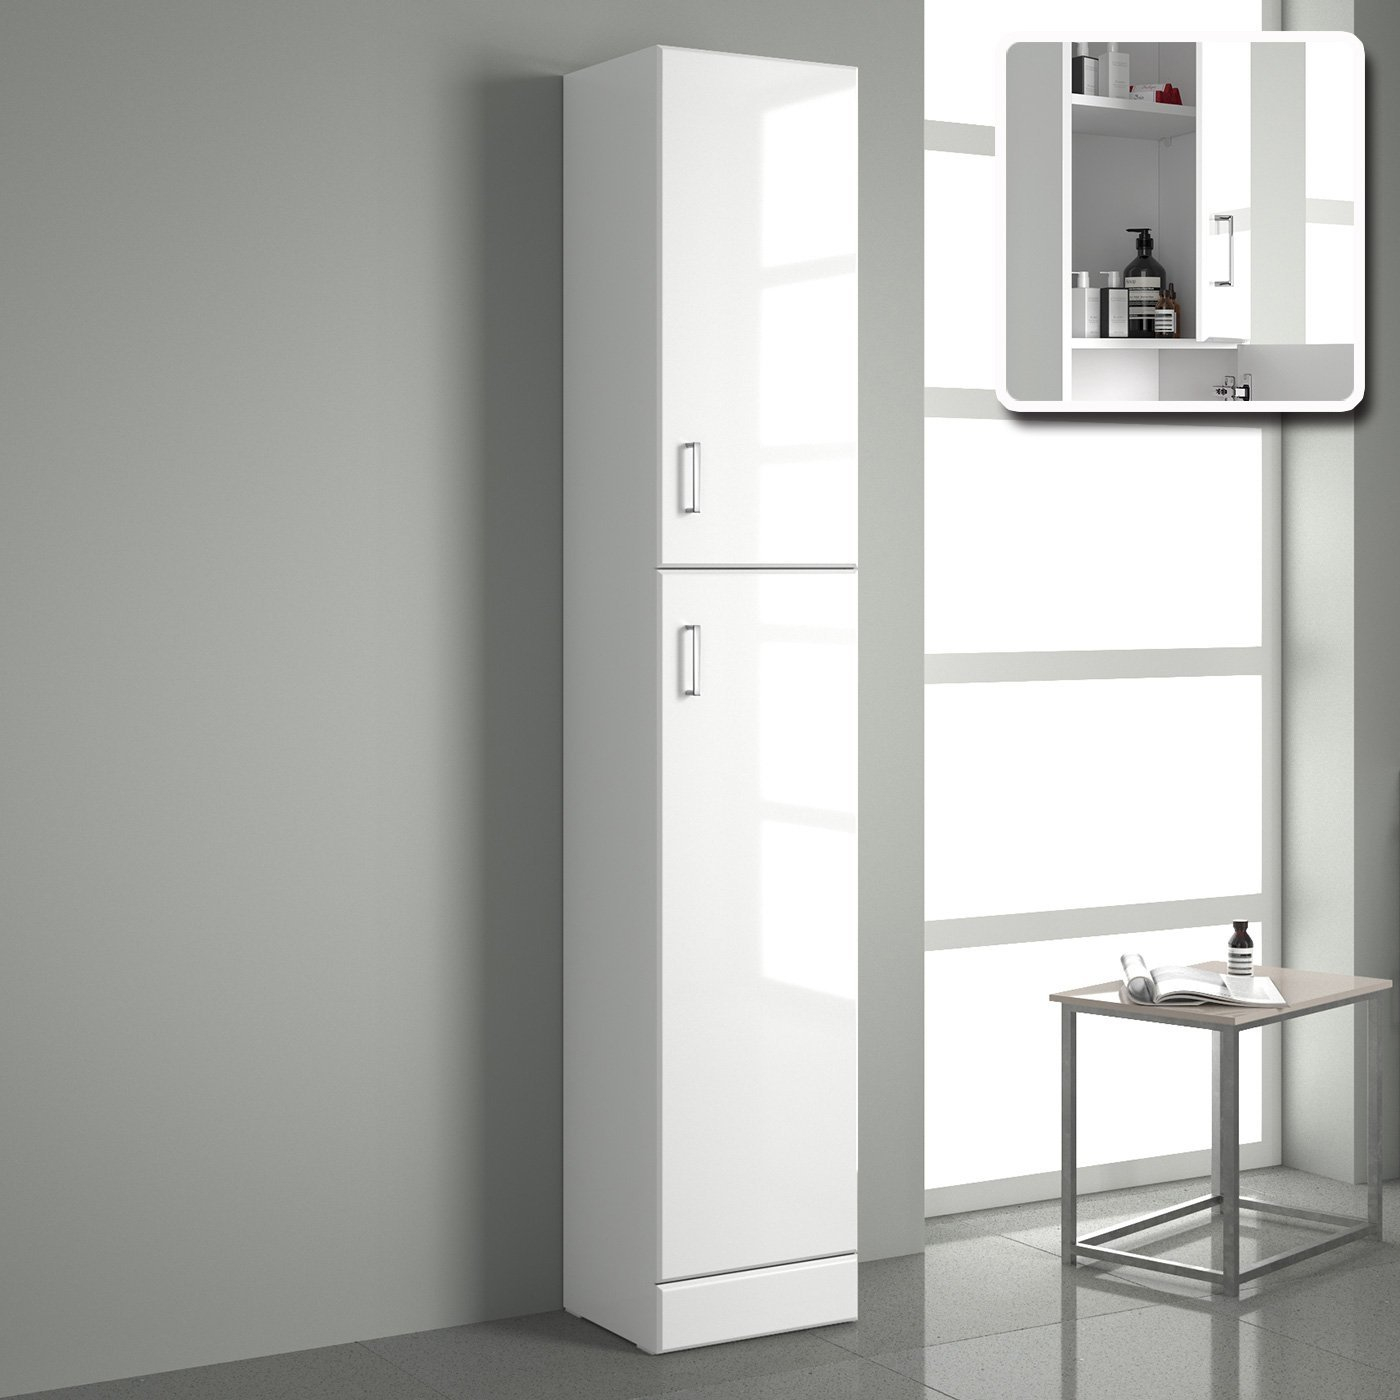 Marvelous Tall Bathroom Cabinet Lidl White Cupboard And pertaining to proportions 1400 X 1400